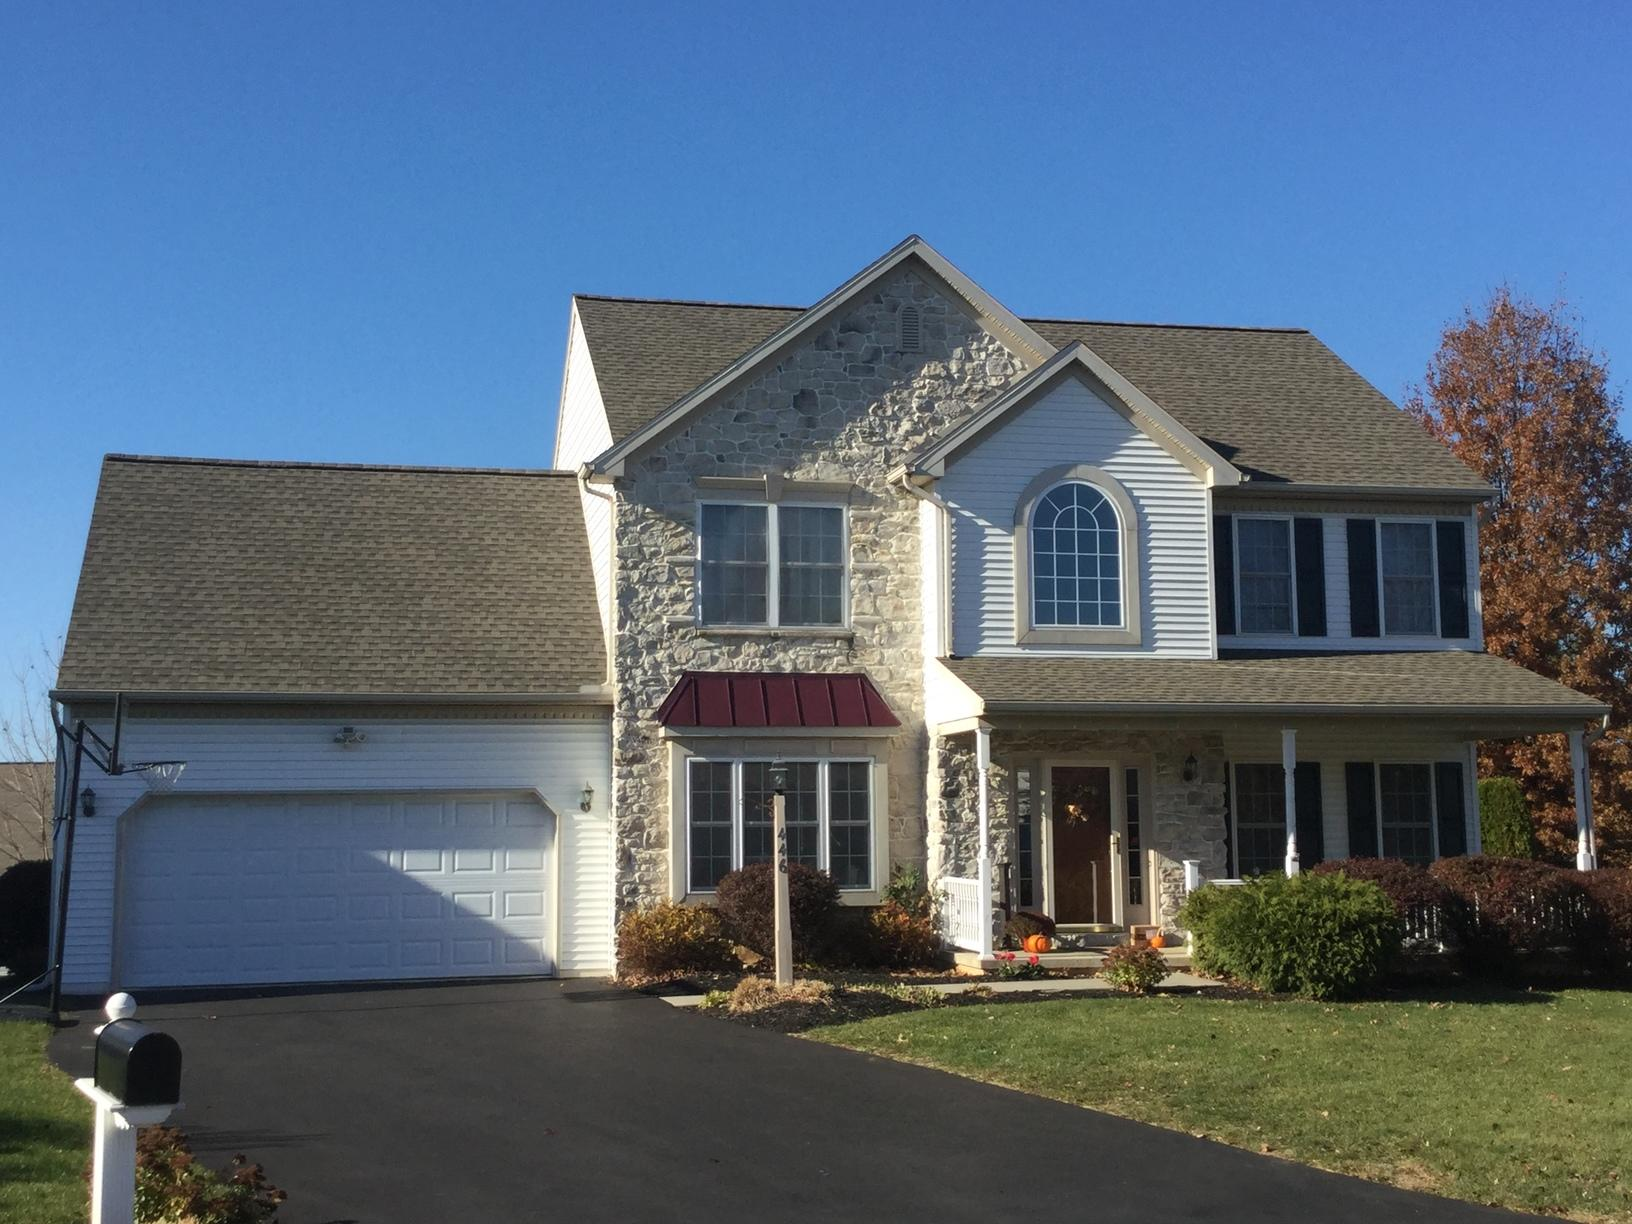 Exterior Painting and Roof Replacement in Palmyra, PA - After Photo